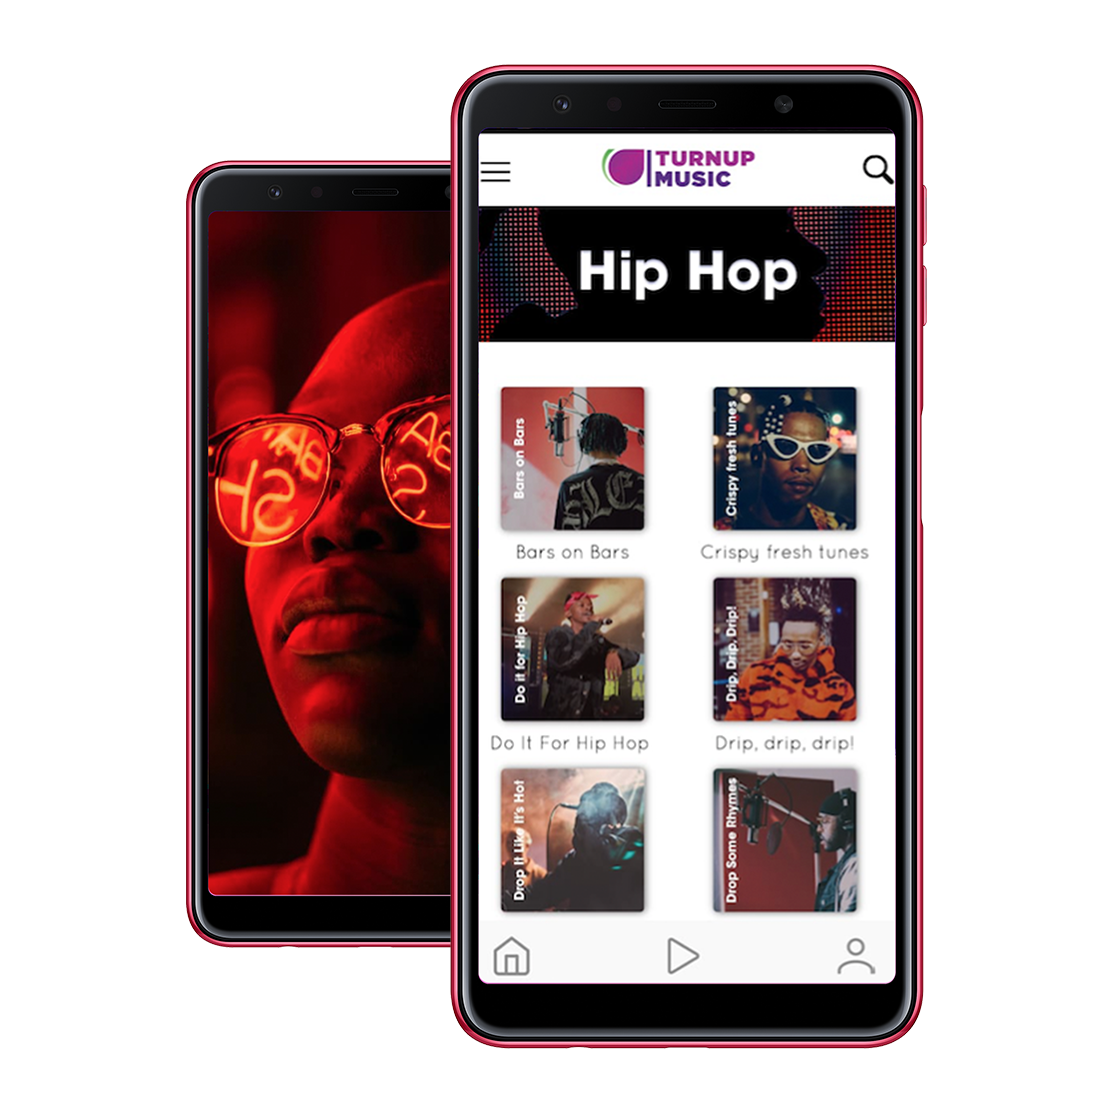 A music downloading service exclusively focused on South African local talent.